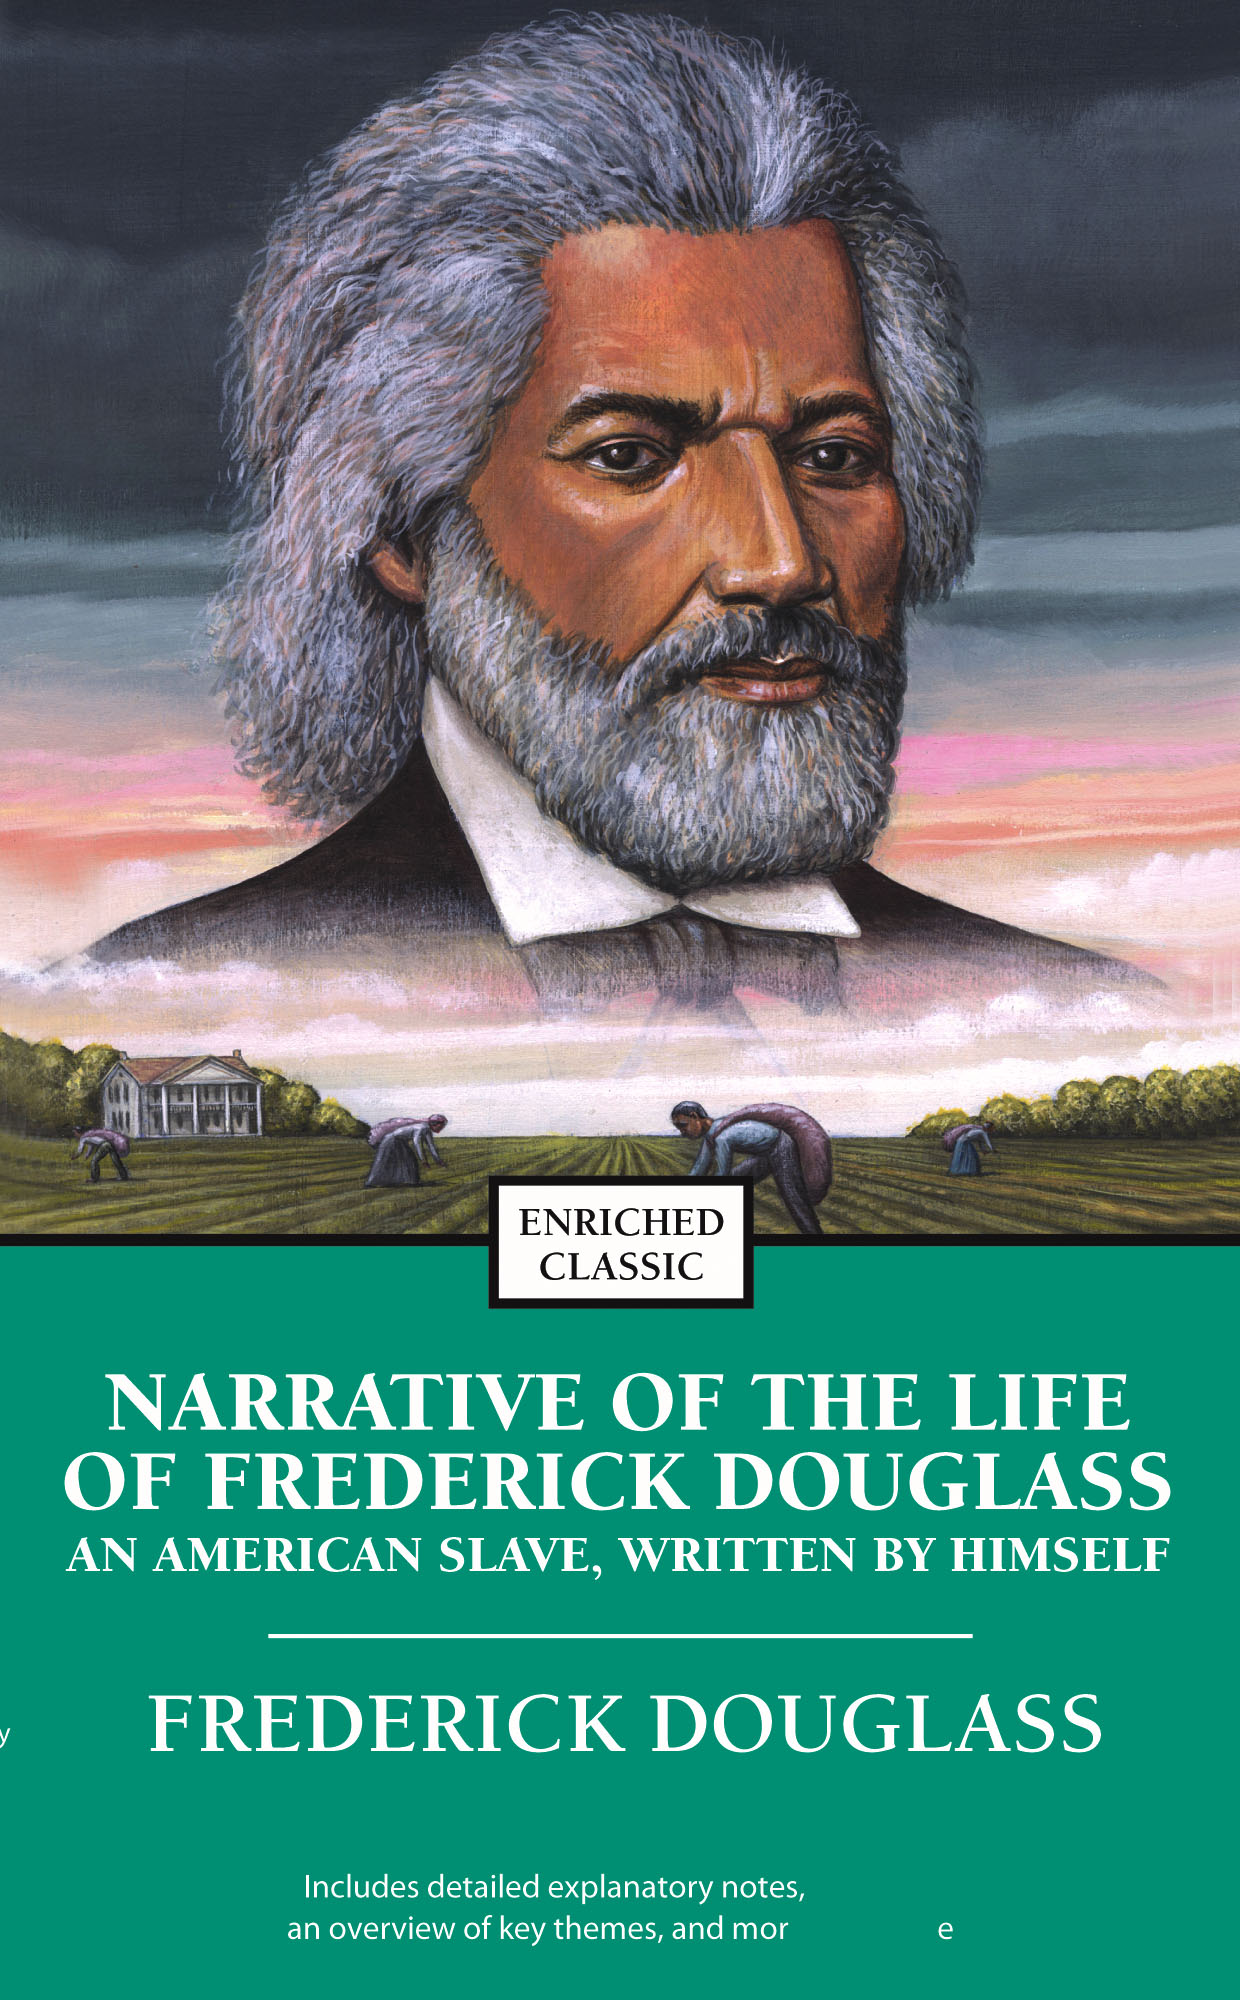 the life of frederick douglass in the narrative of the life of frederick douglass an american slave